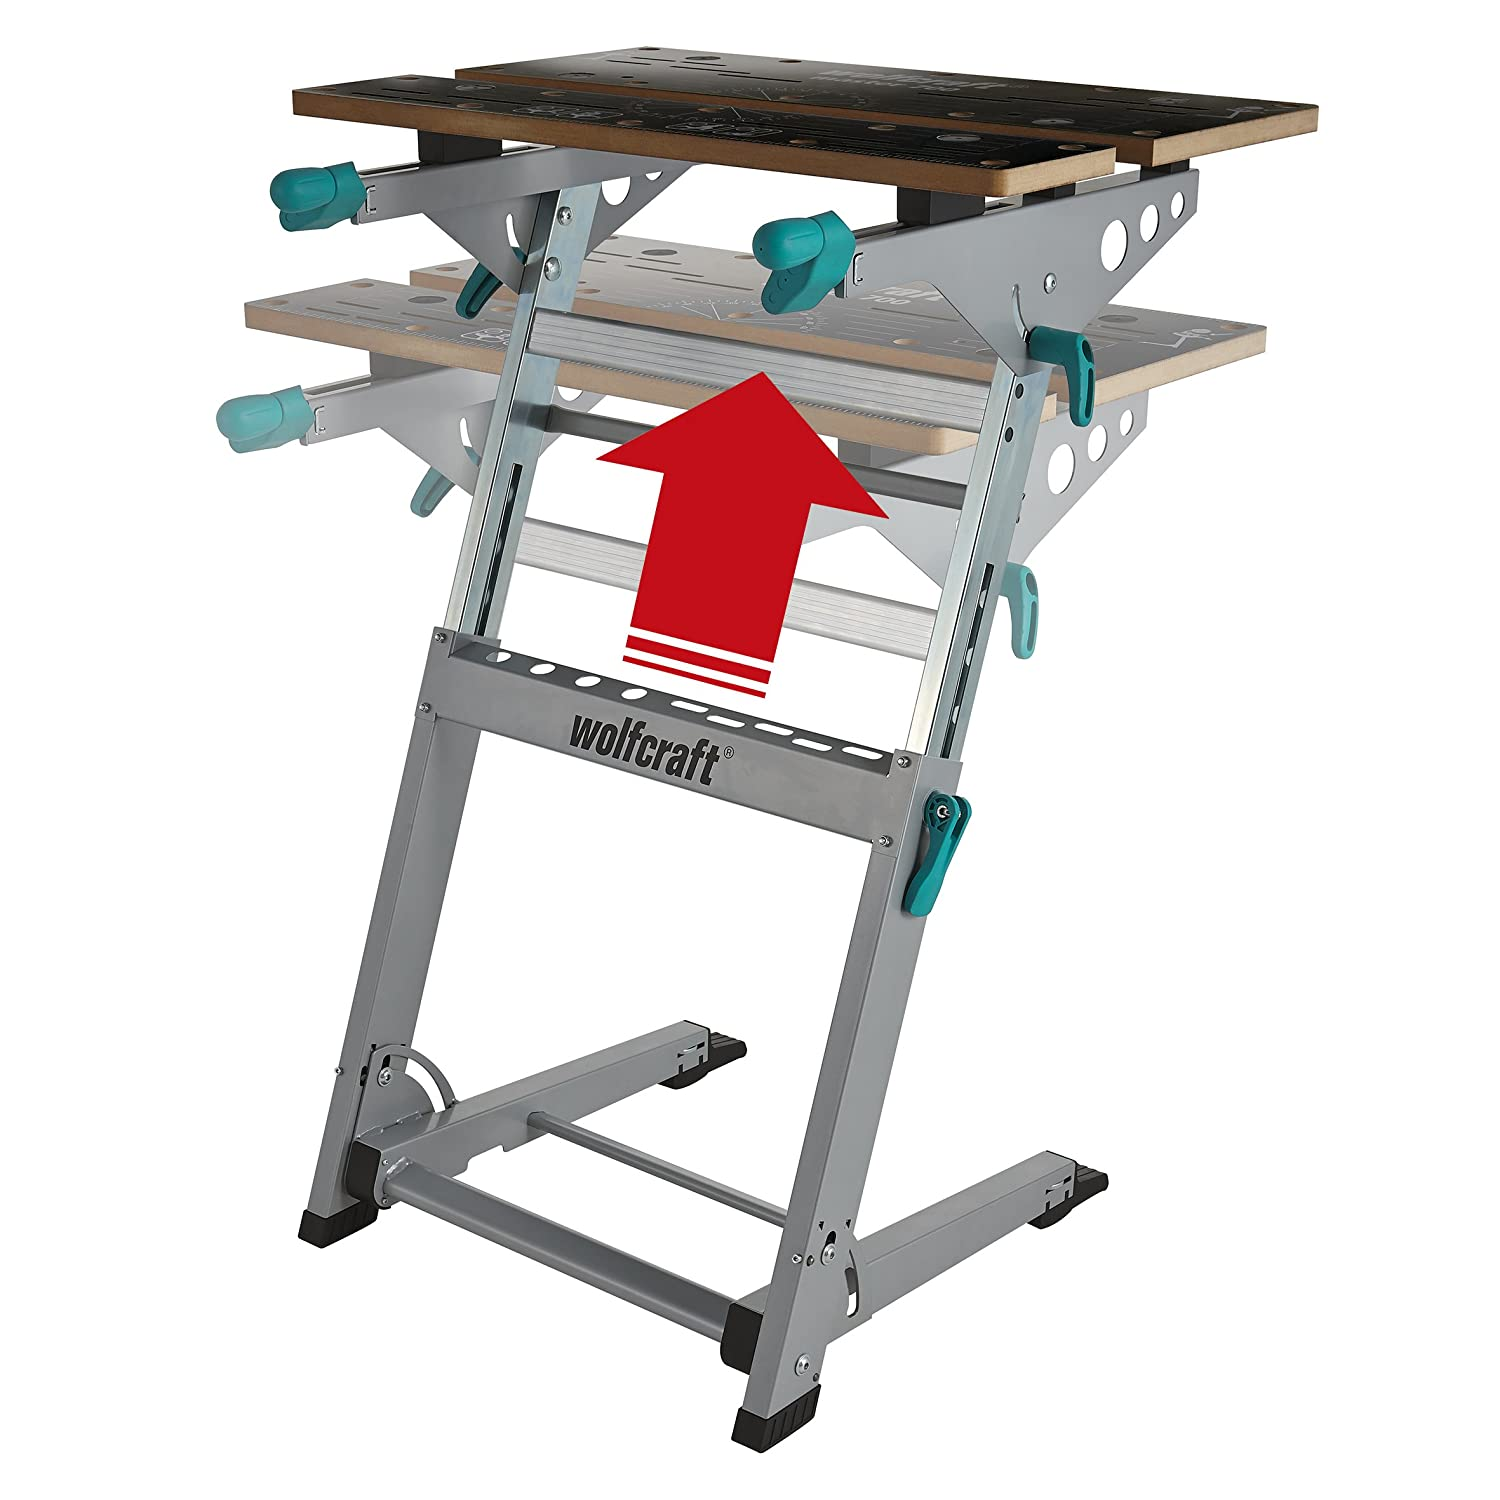 Wolfcraft 6908000 Master 700 Workbench, Foldable & Height Adjustable Clamping and Machine Table